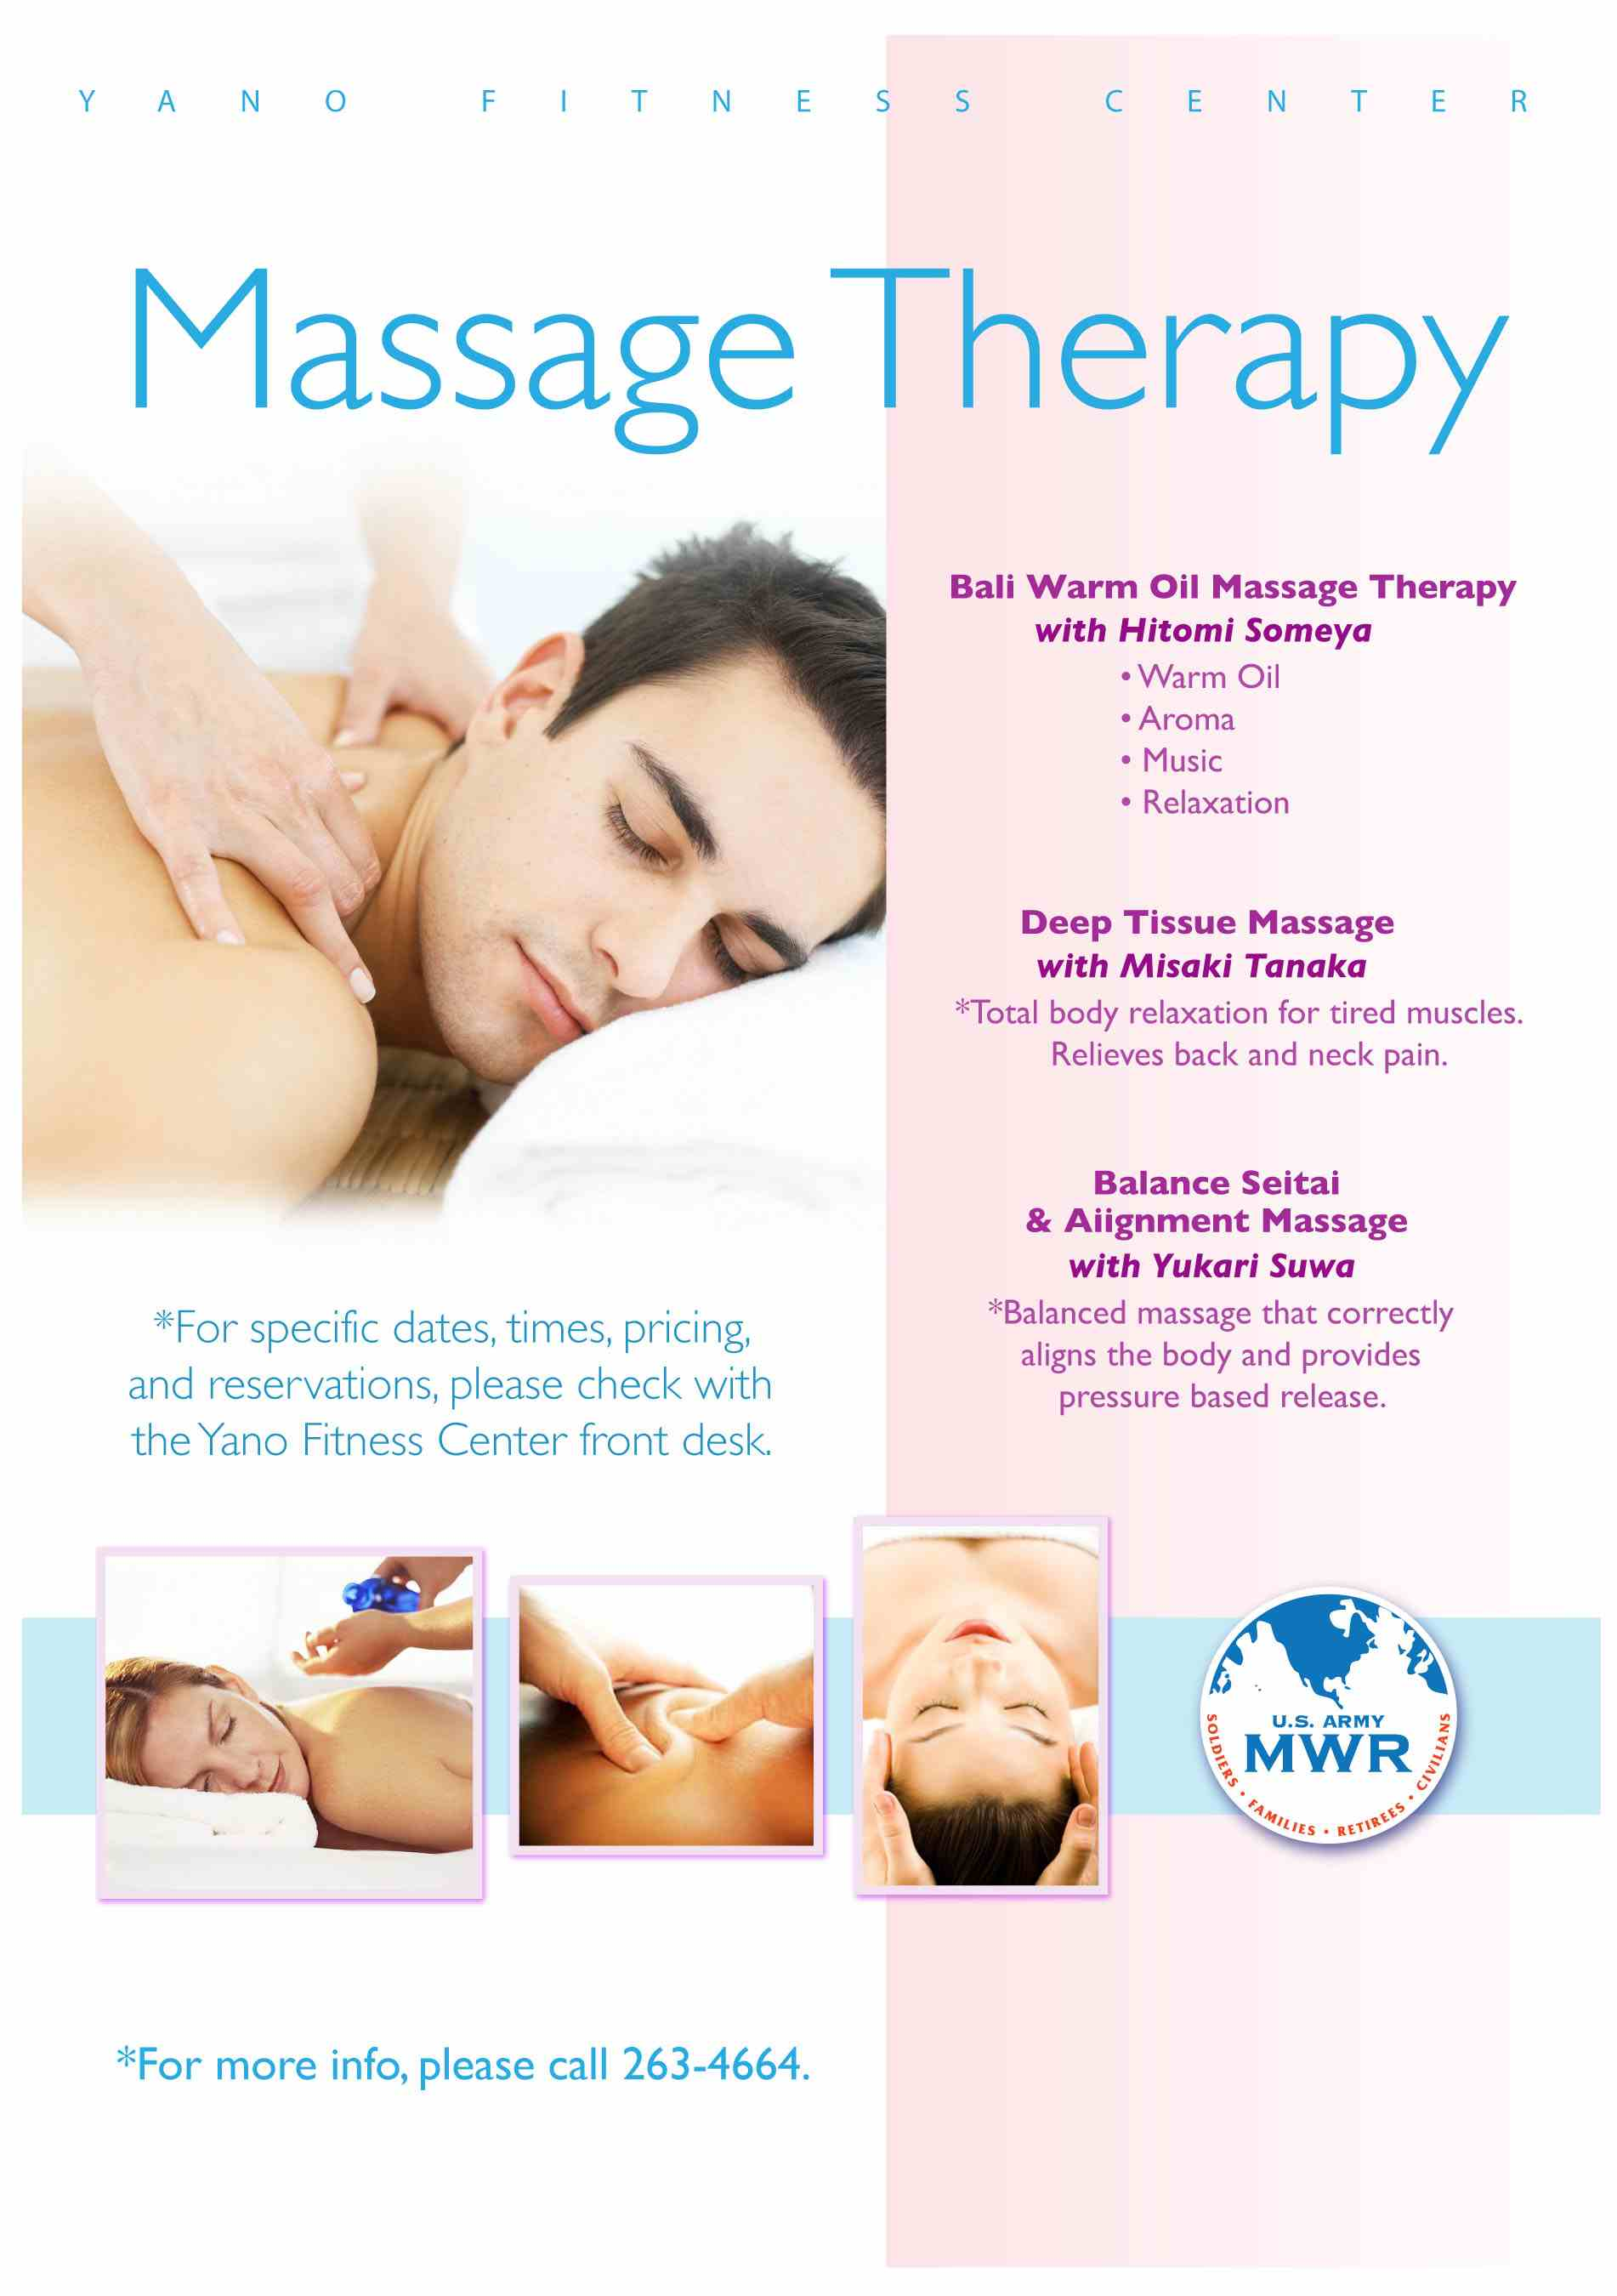 Massage Therapy-A3.jpg